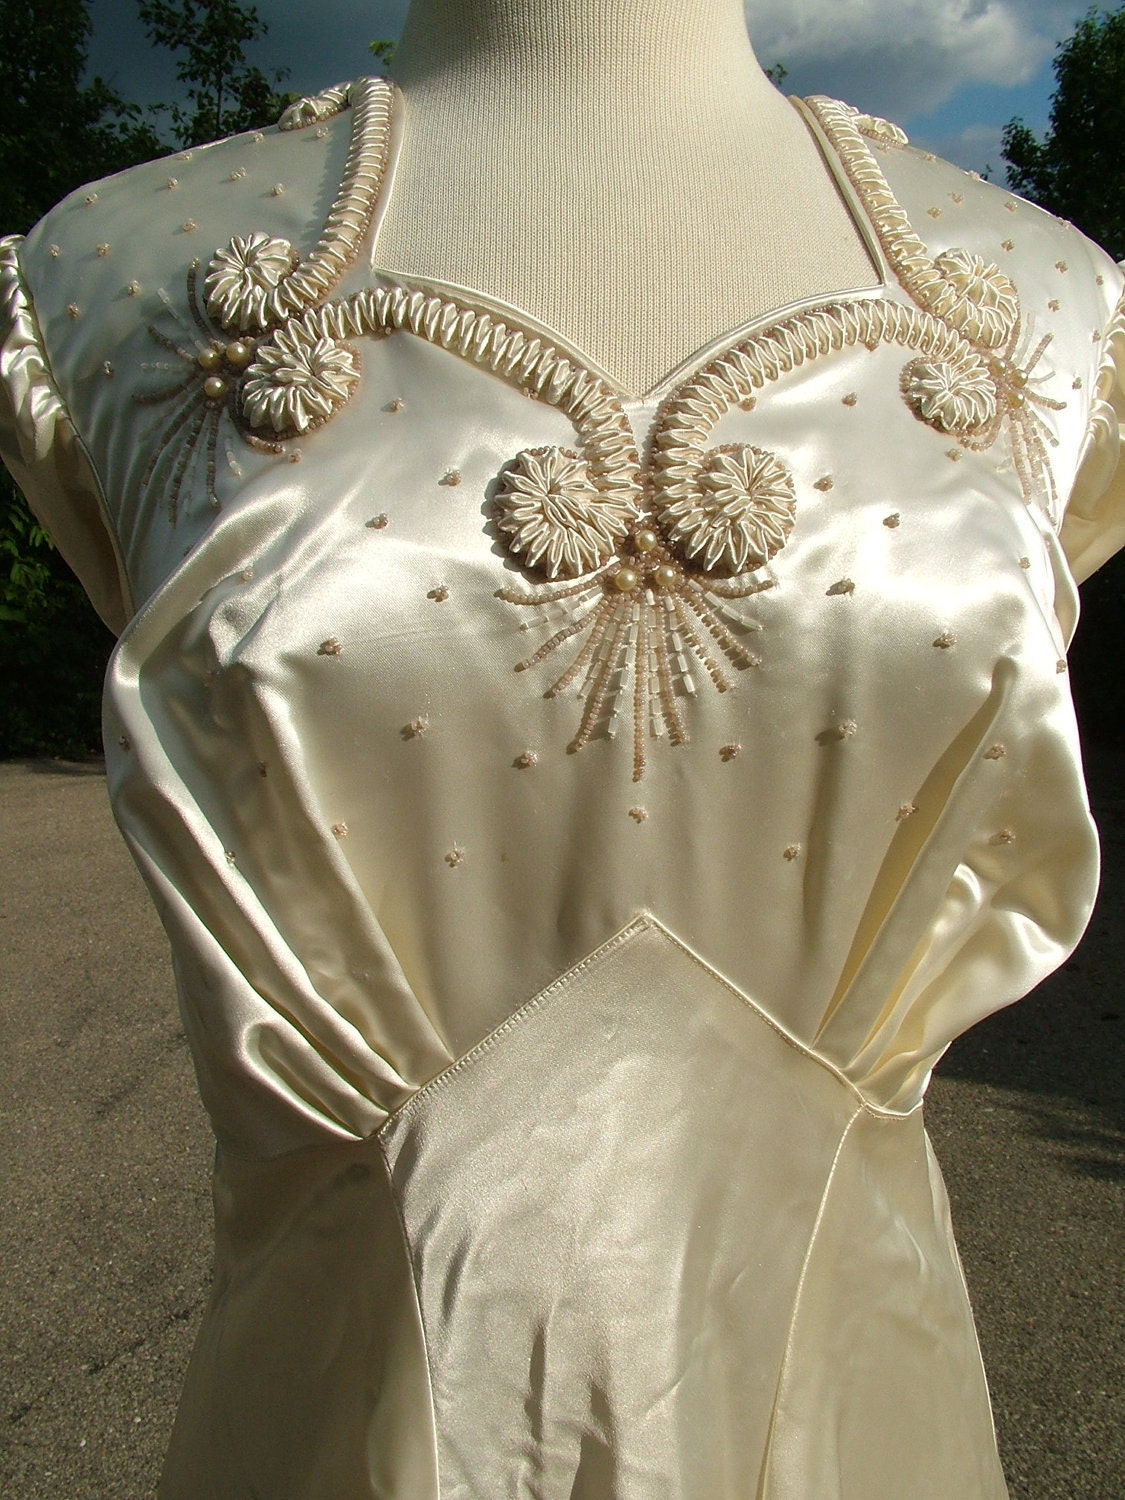 Vintage 1940s Slipper Satin Wedding Gown Dress With Remarkable